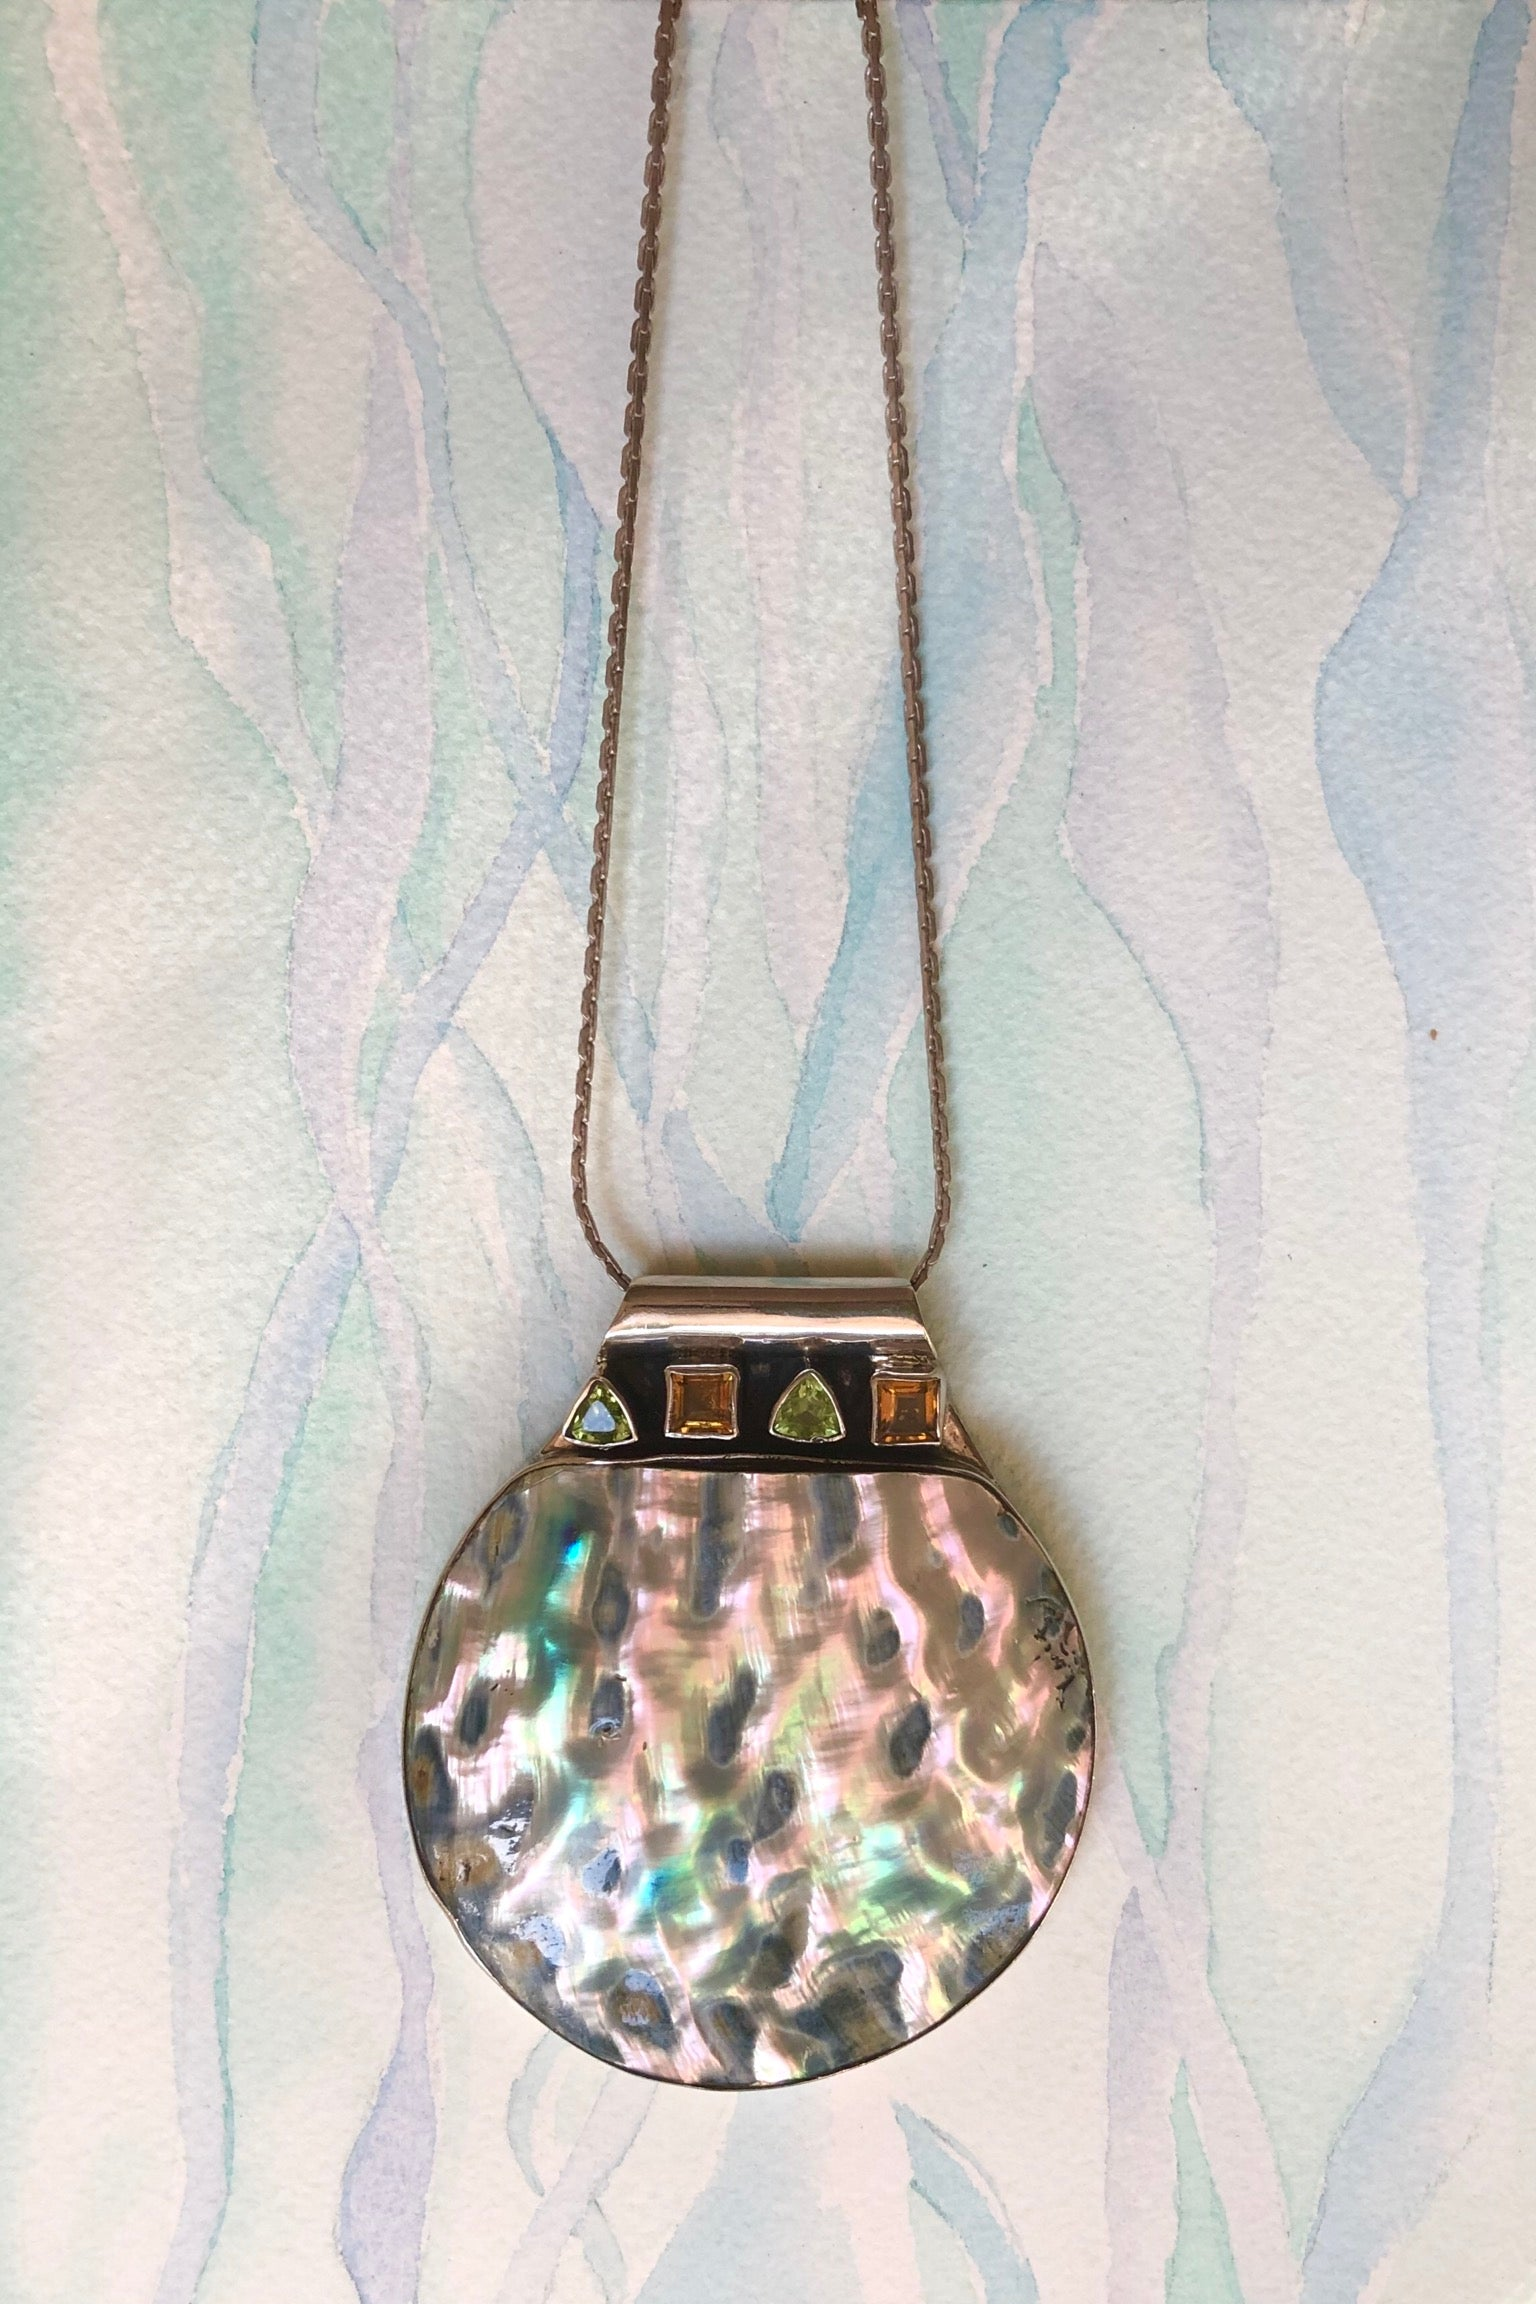 Echo Sea shell and Gemstone Silver Pendant is cut from a gorgeous shimmery shell with citrine and peridot gemstones along the top. This comes on a silver chain.